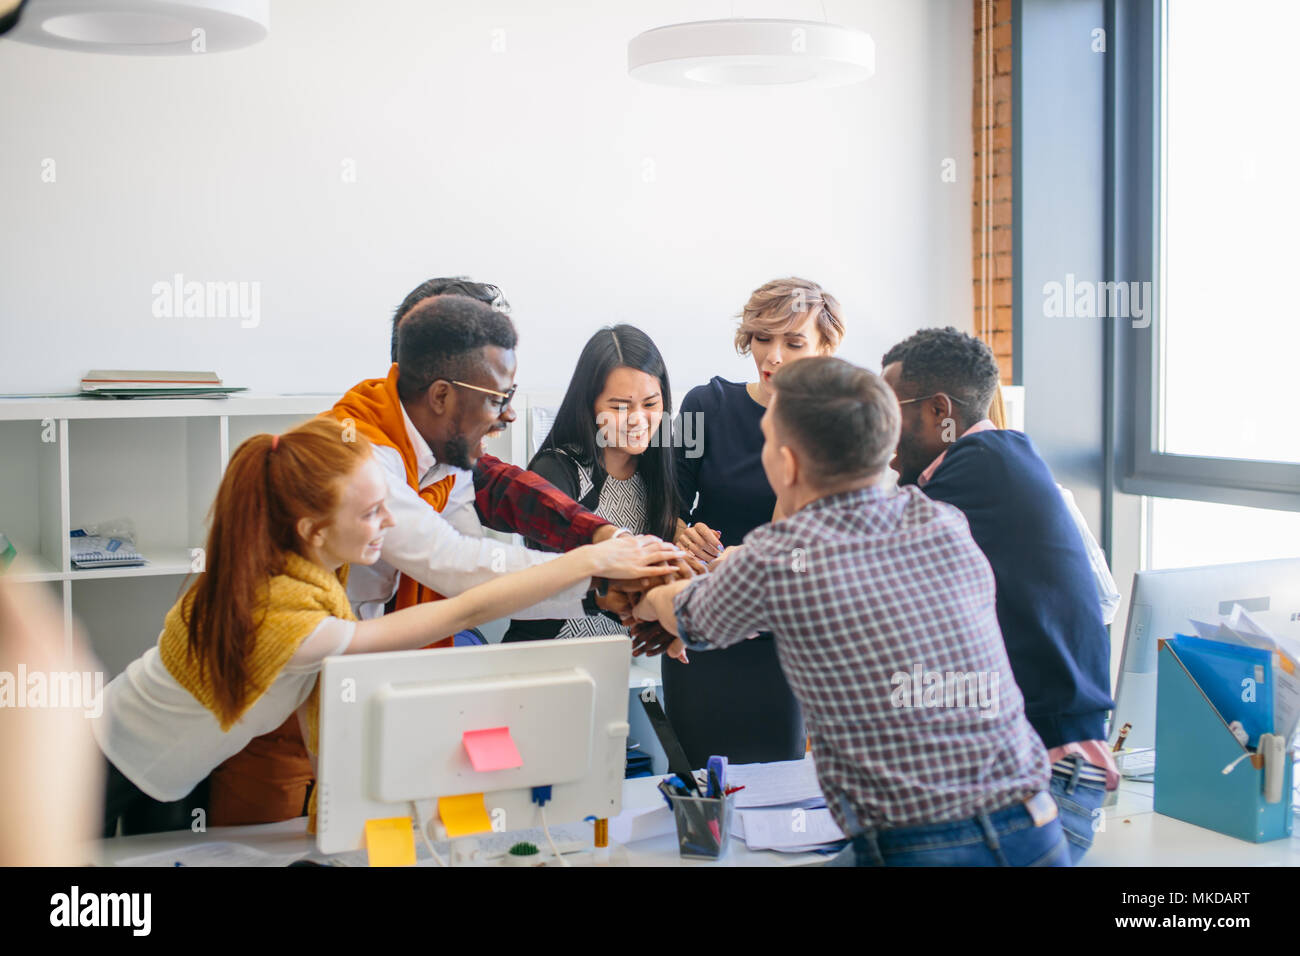 international group of students putting hands on the top of each other. close-up image - Stock Image